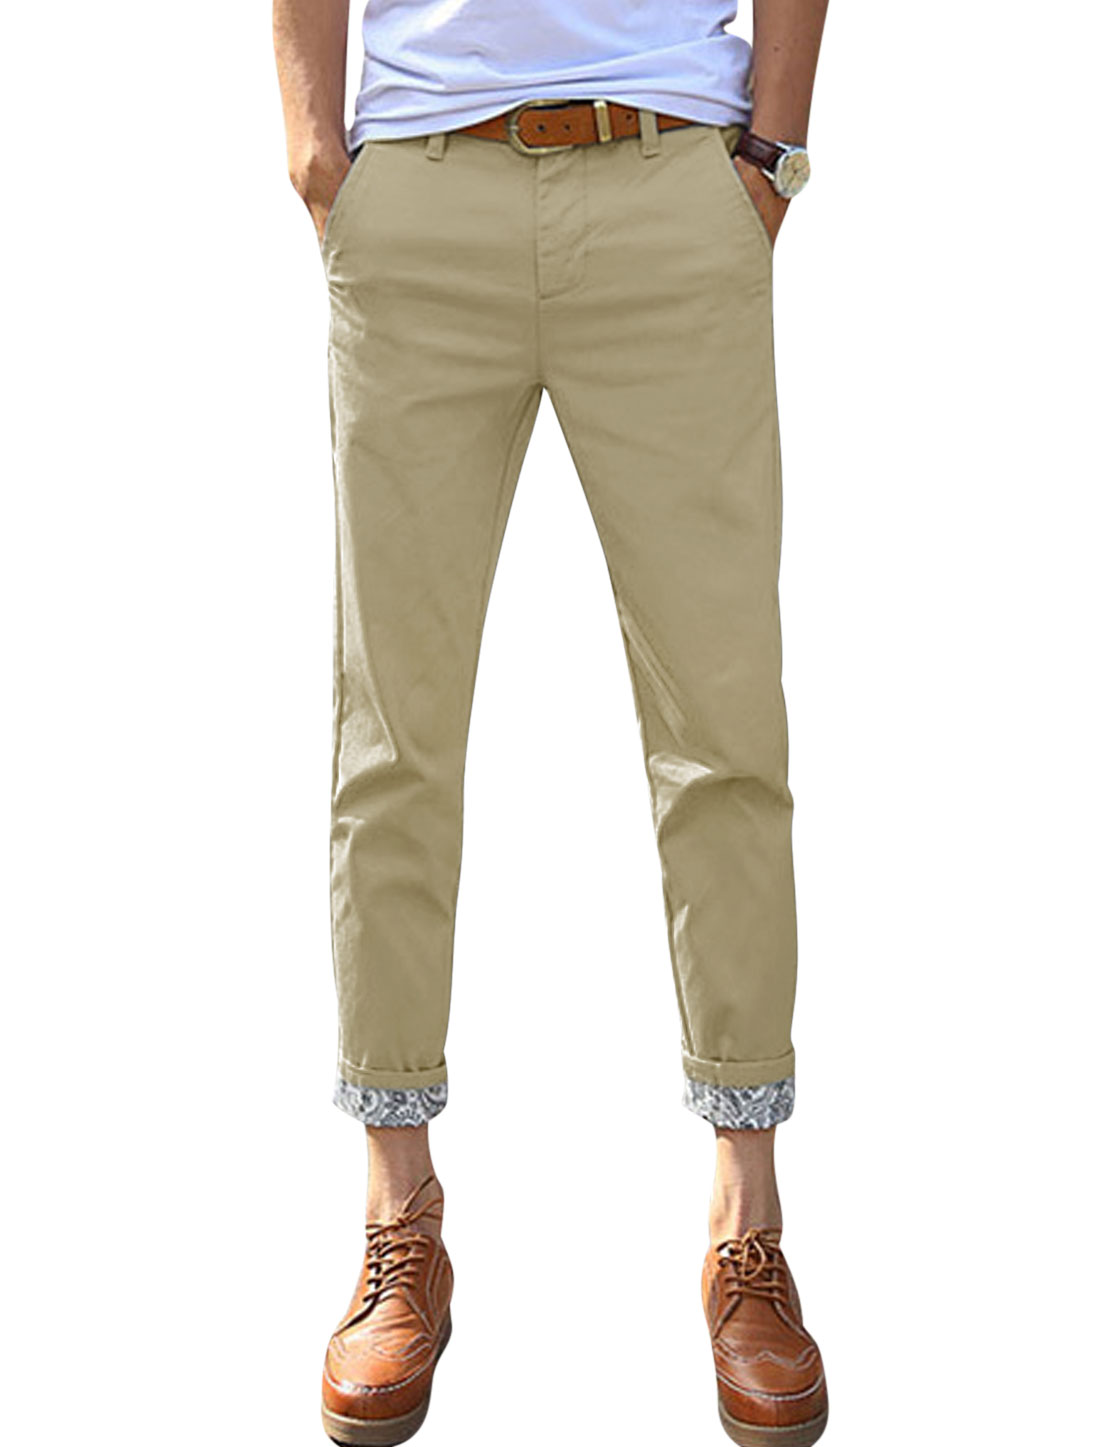 Man Jacquard Design Detail Mid Rise Belt Loop Slim Fit Cropped Pants Khaki W32